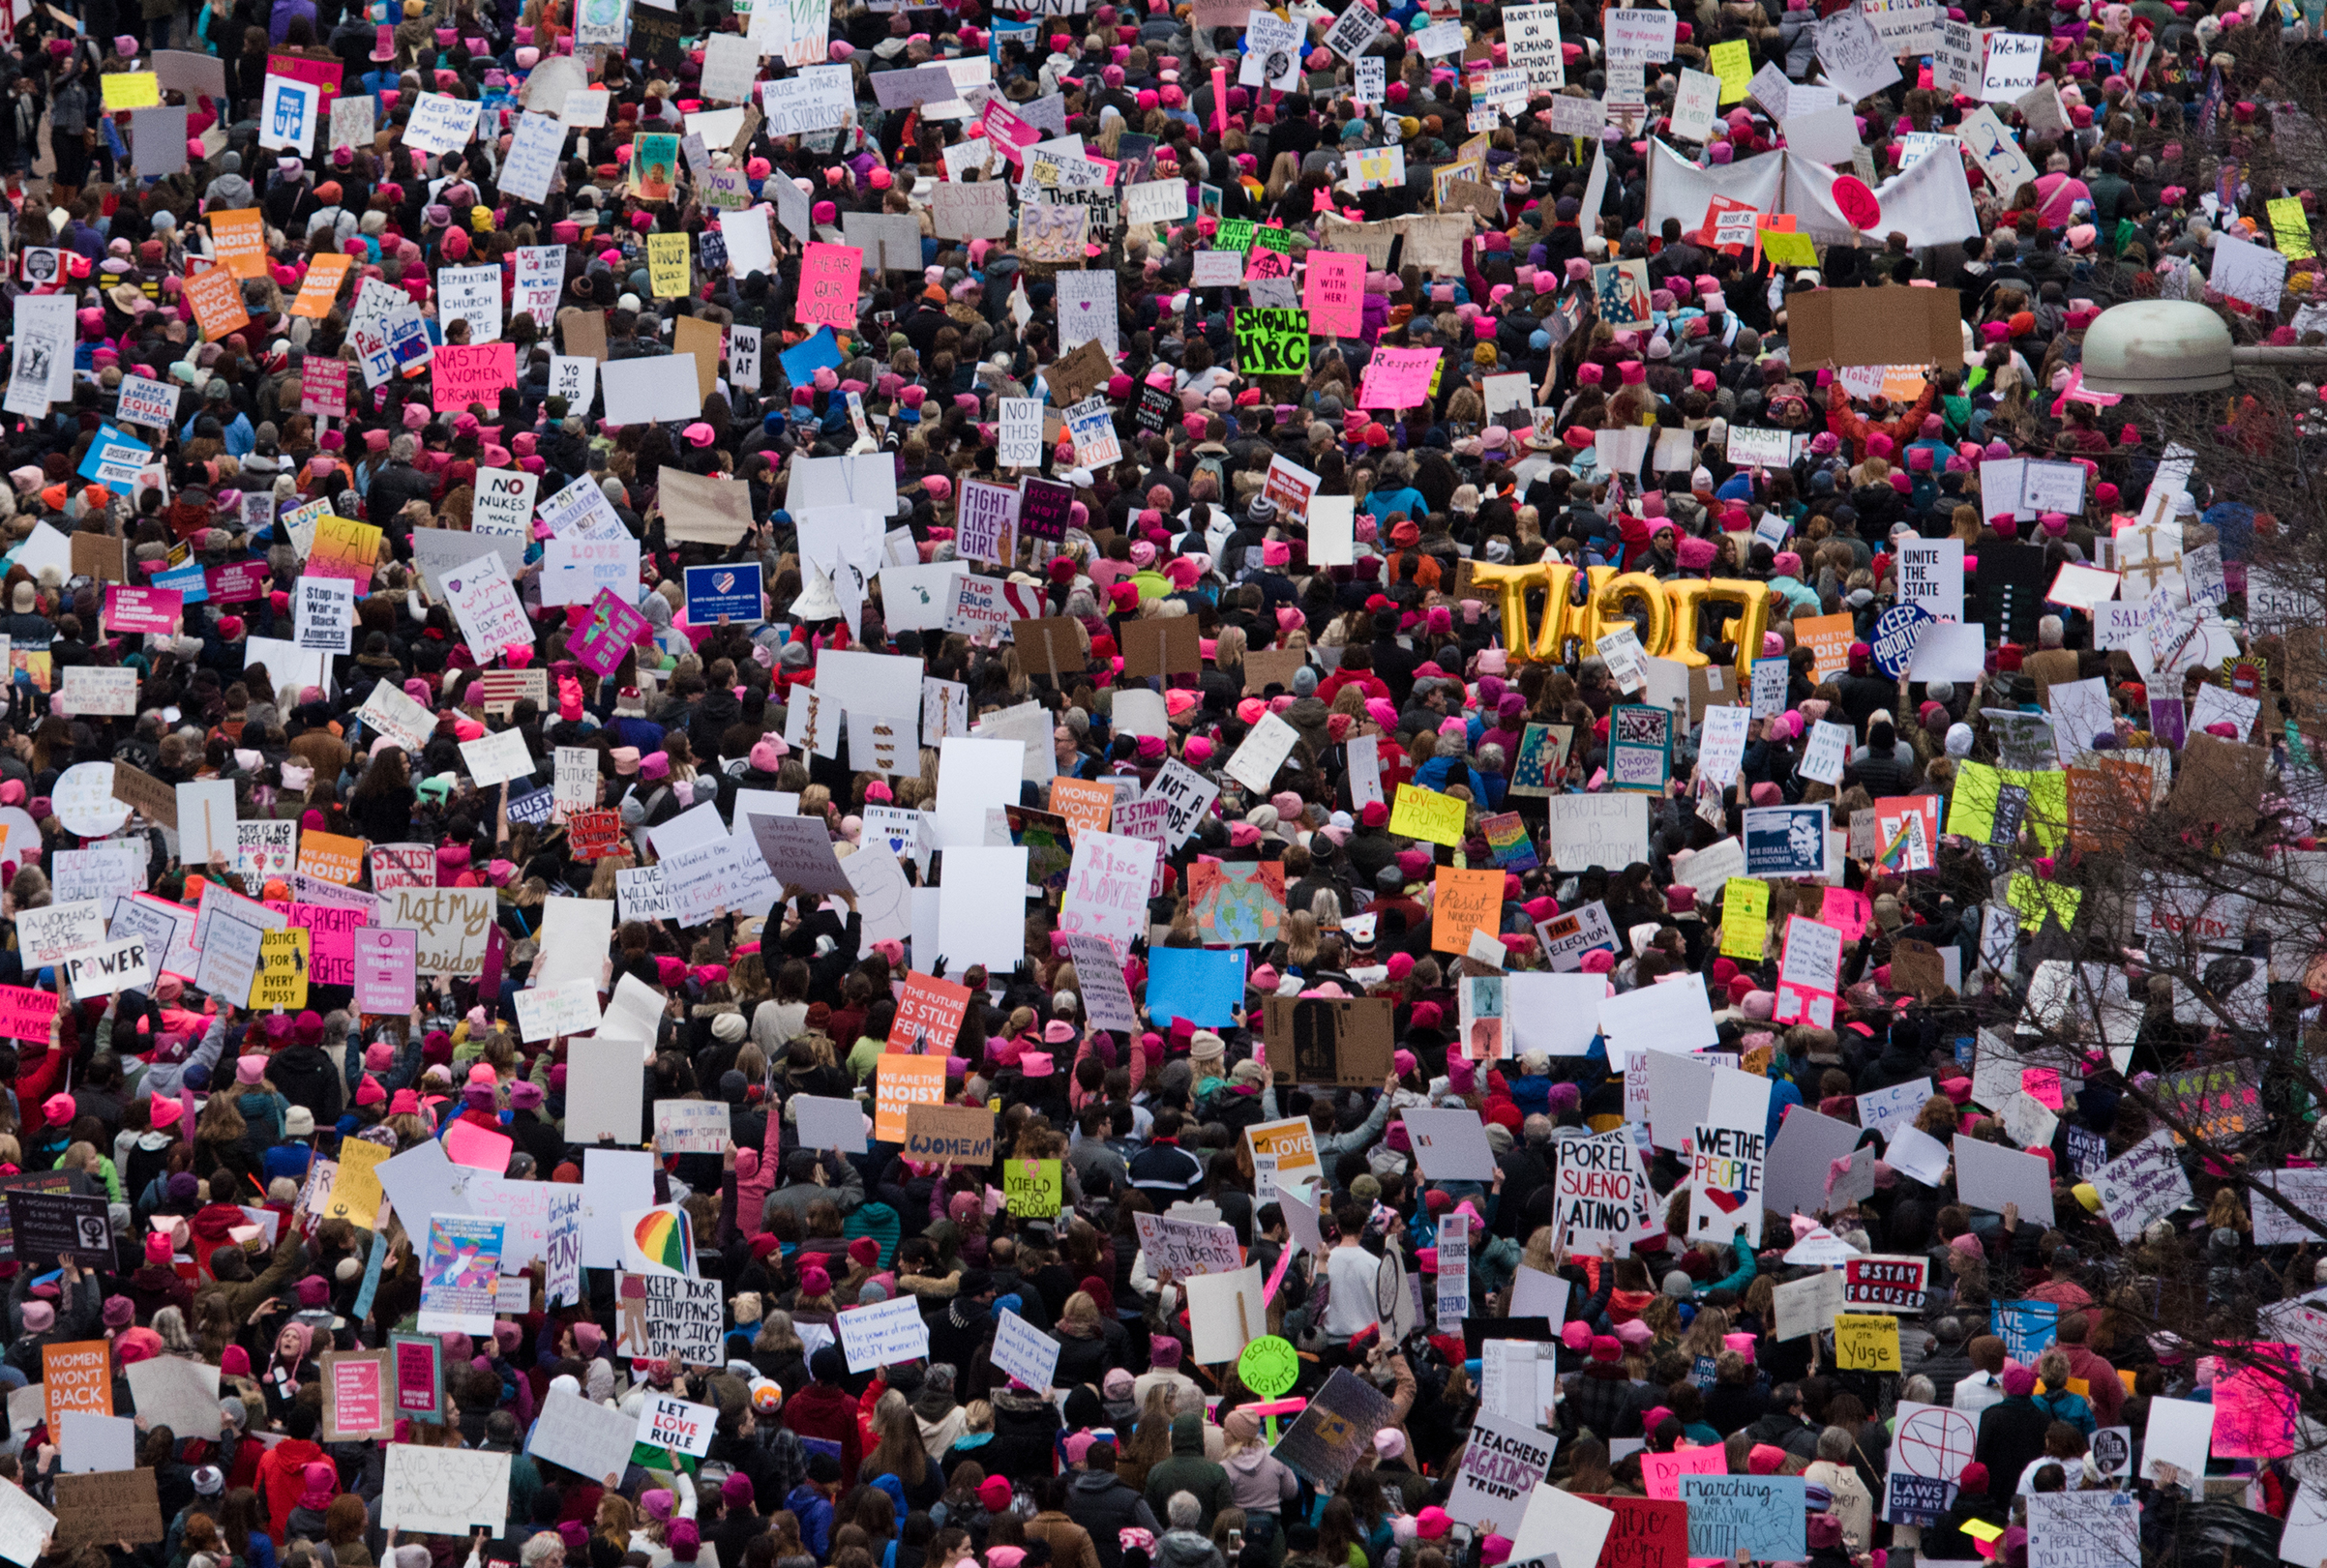 A view of demonstrators marching on Pennsylvania Avenue during the Women's March on Washington on January 21, 2017.